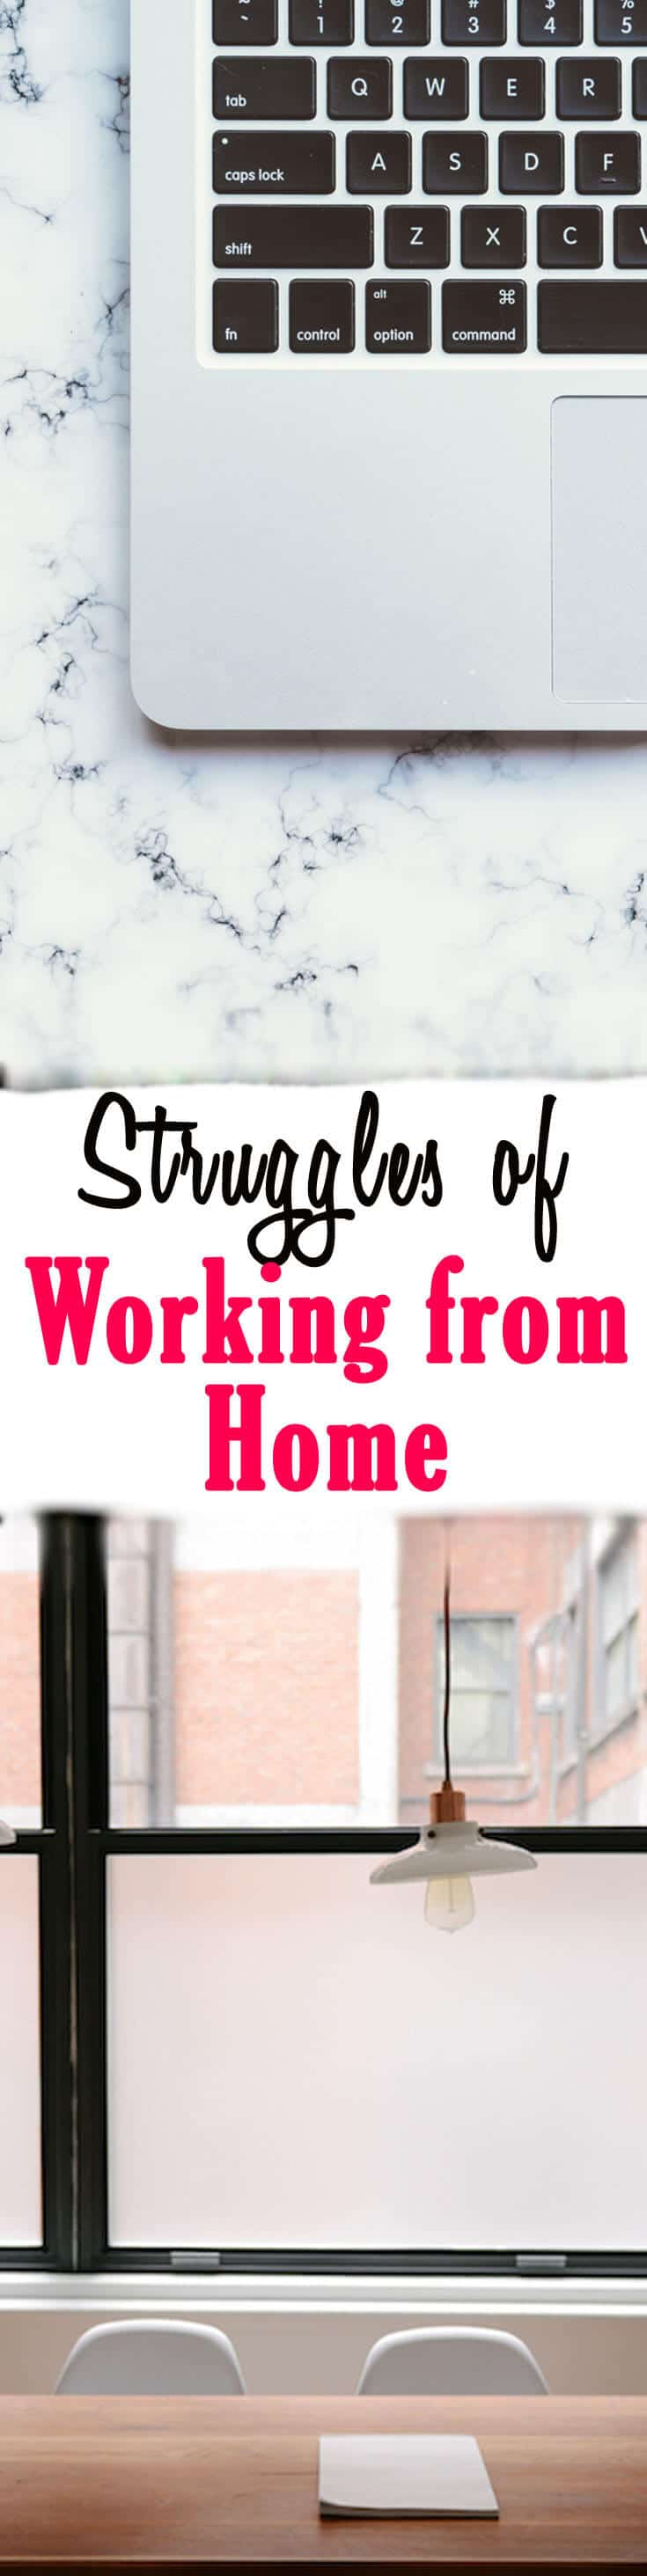 I share some of the top struggles of freelancing and working from home along with my top tips for how to make it work for you!